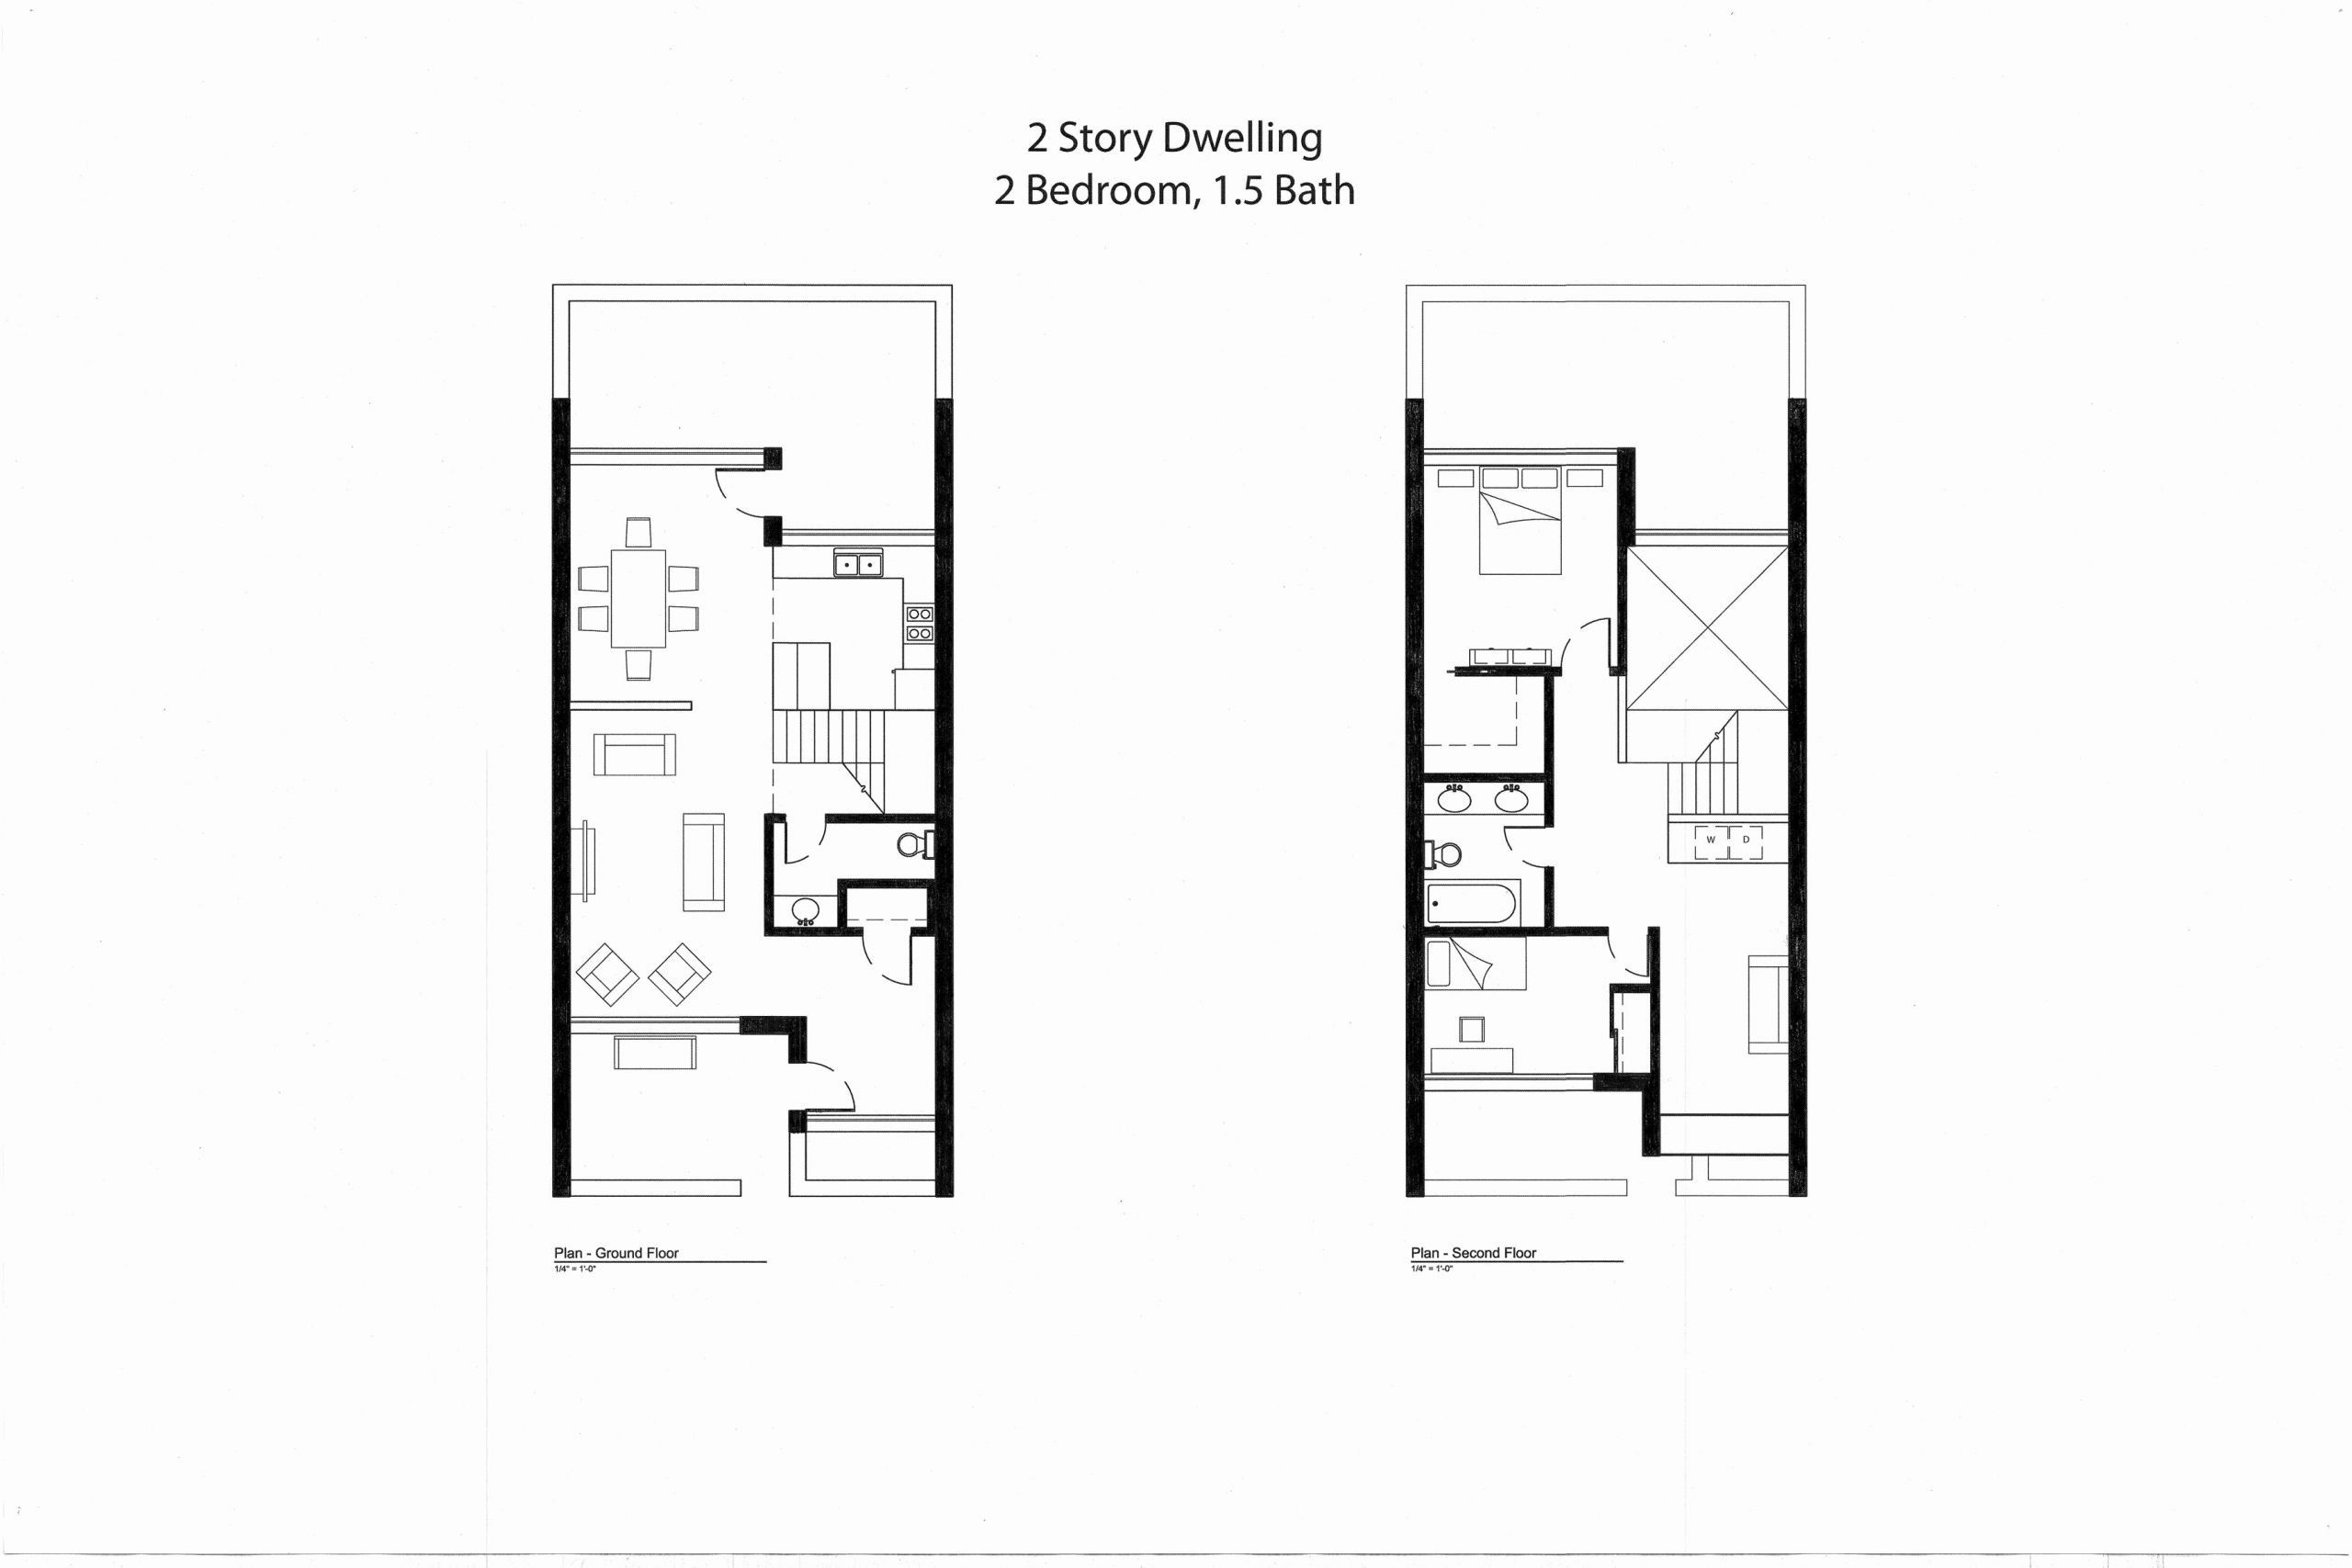 16 X 28 House Plans Lovely The 34 Magnificient 16x28 House Plans